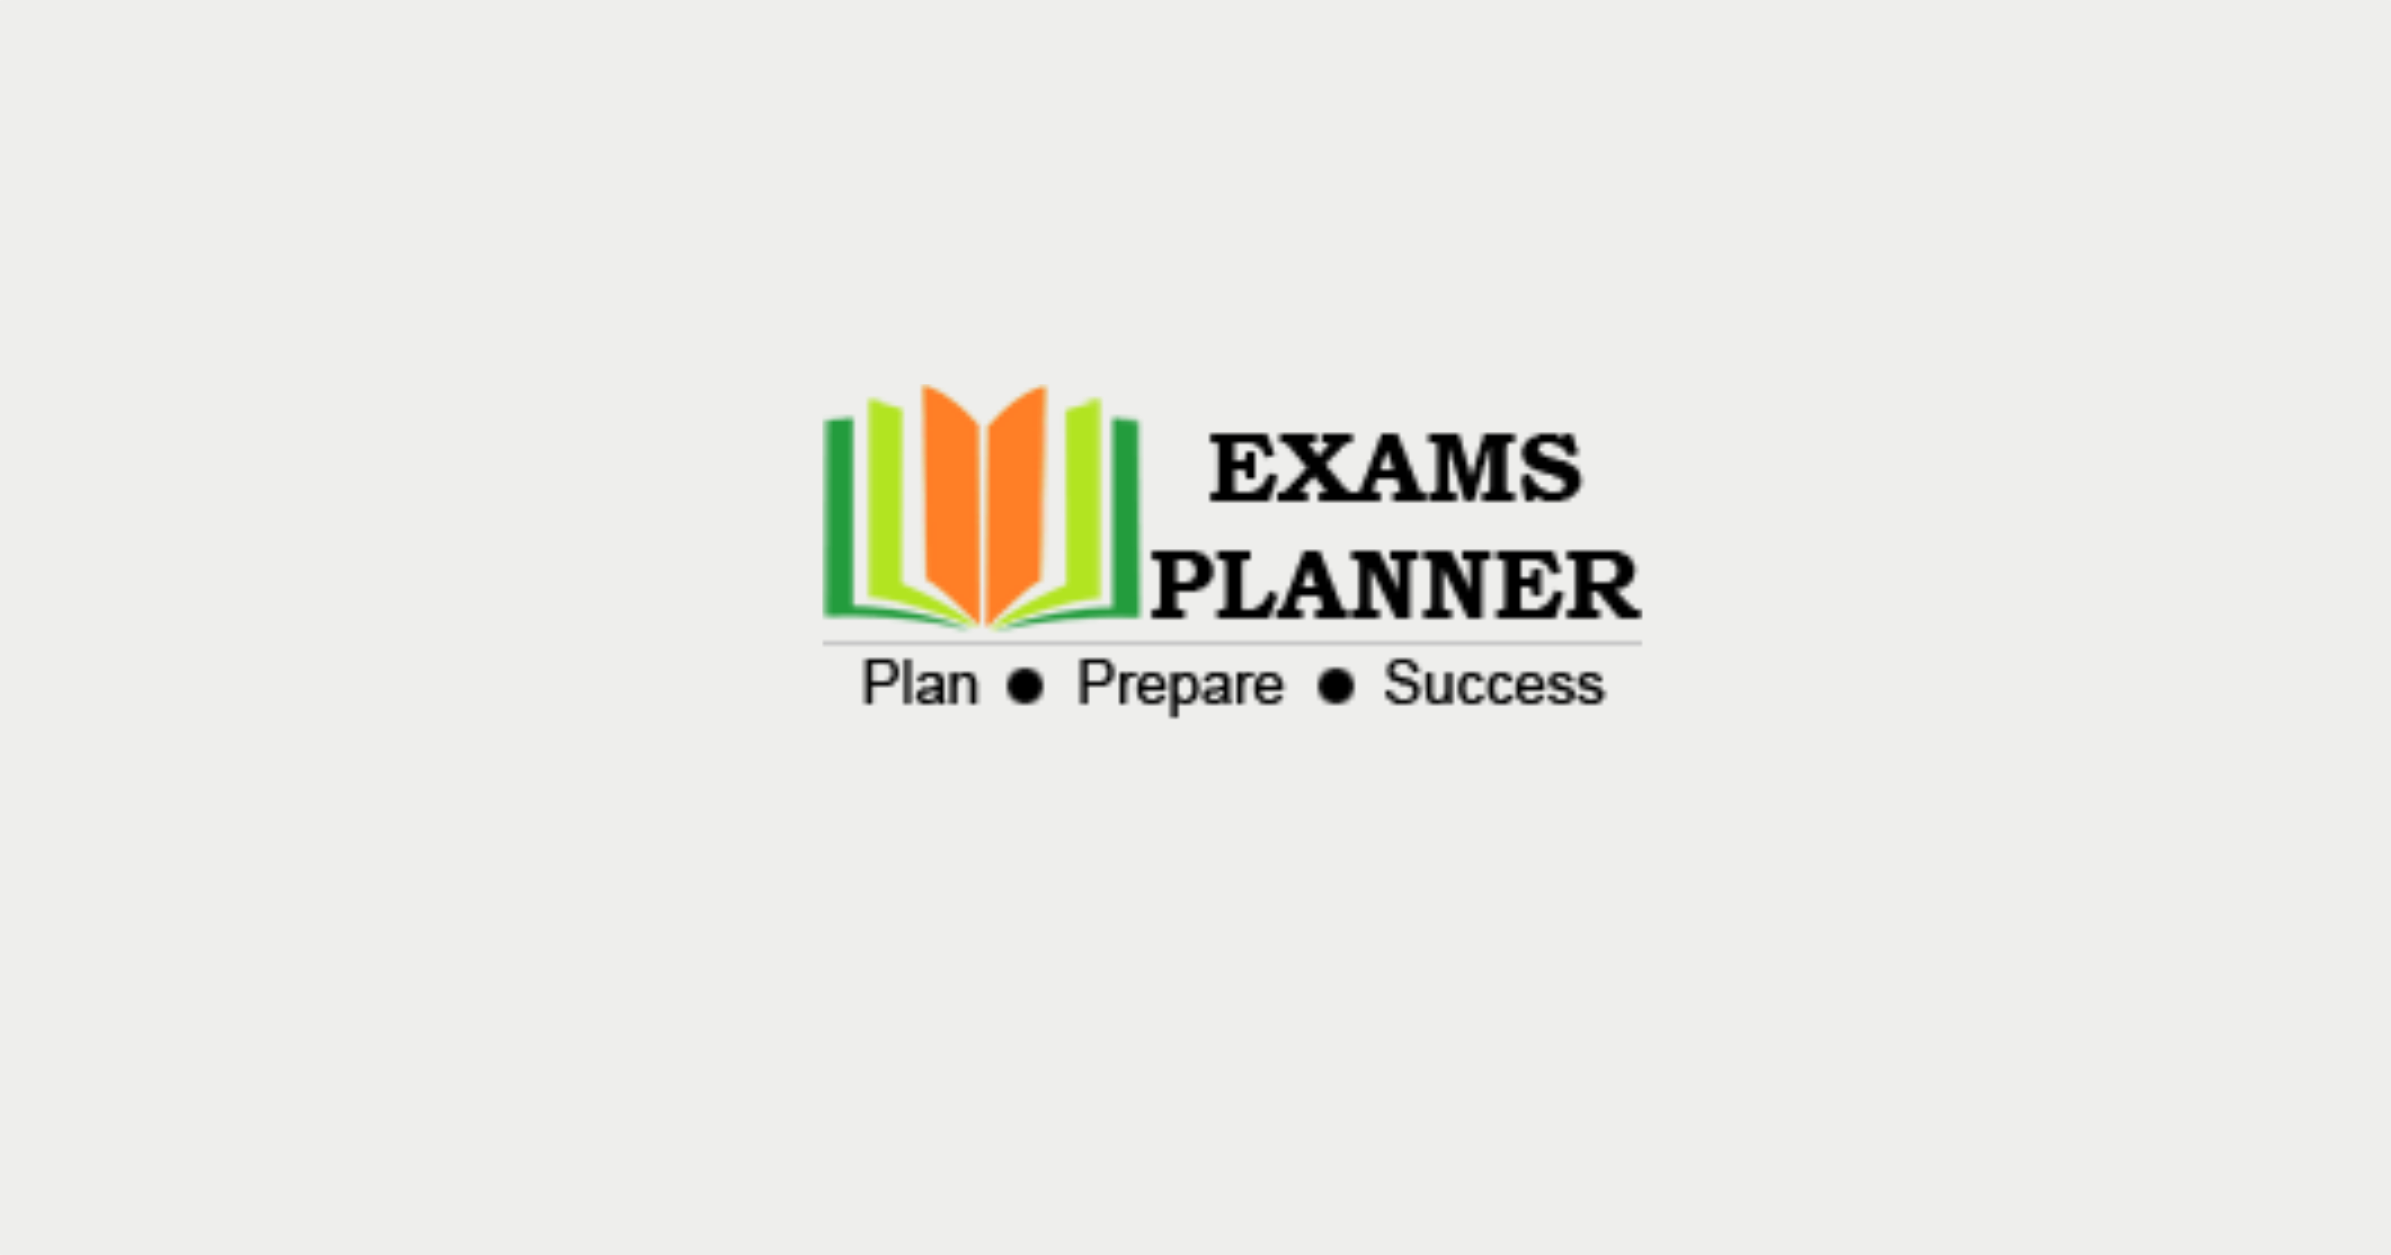 15 Proven Tips to Clear JEE Main 2019 - Exam Tips & Tricks